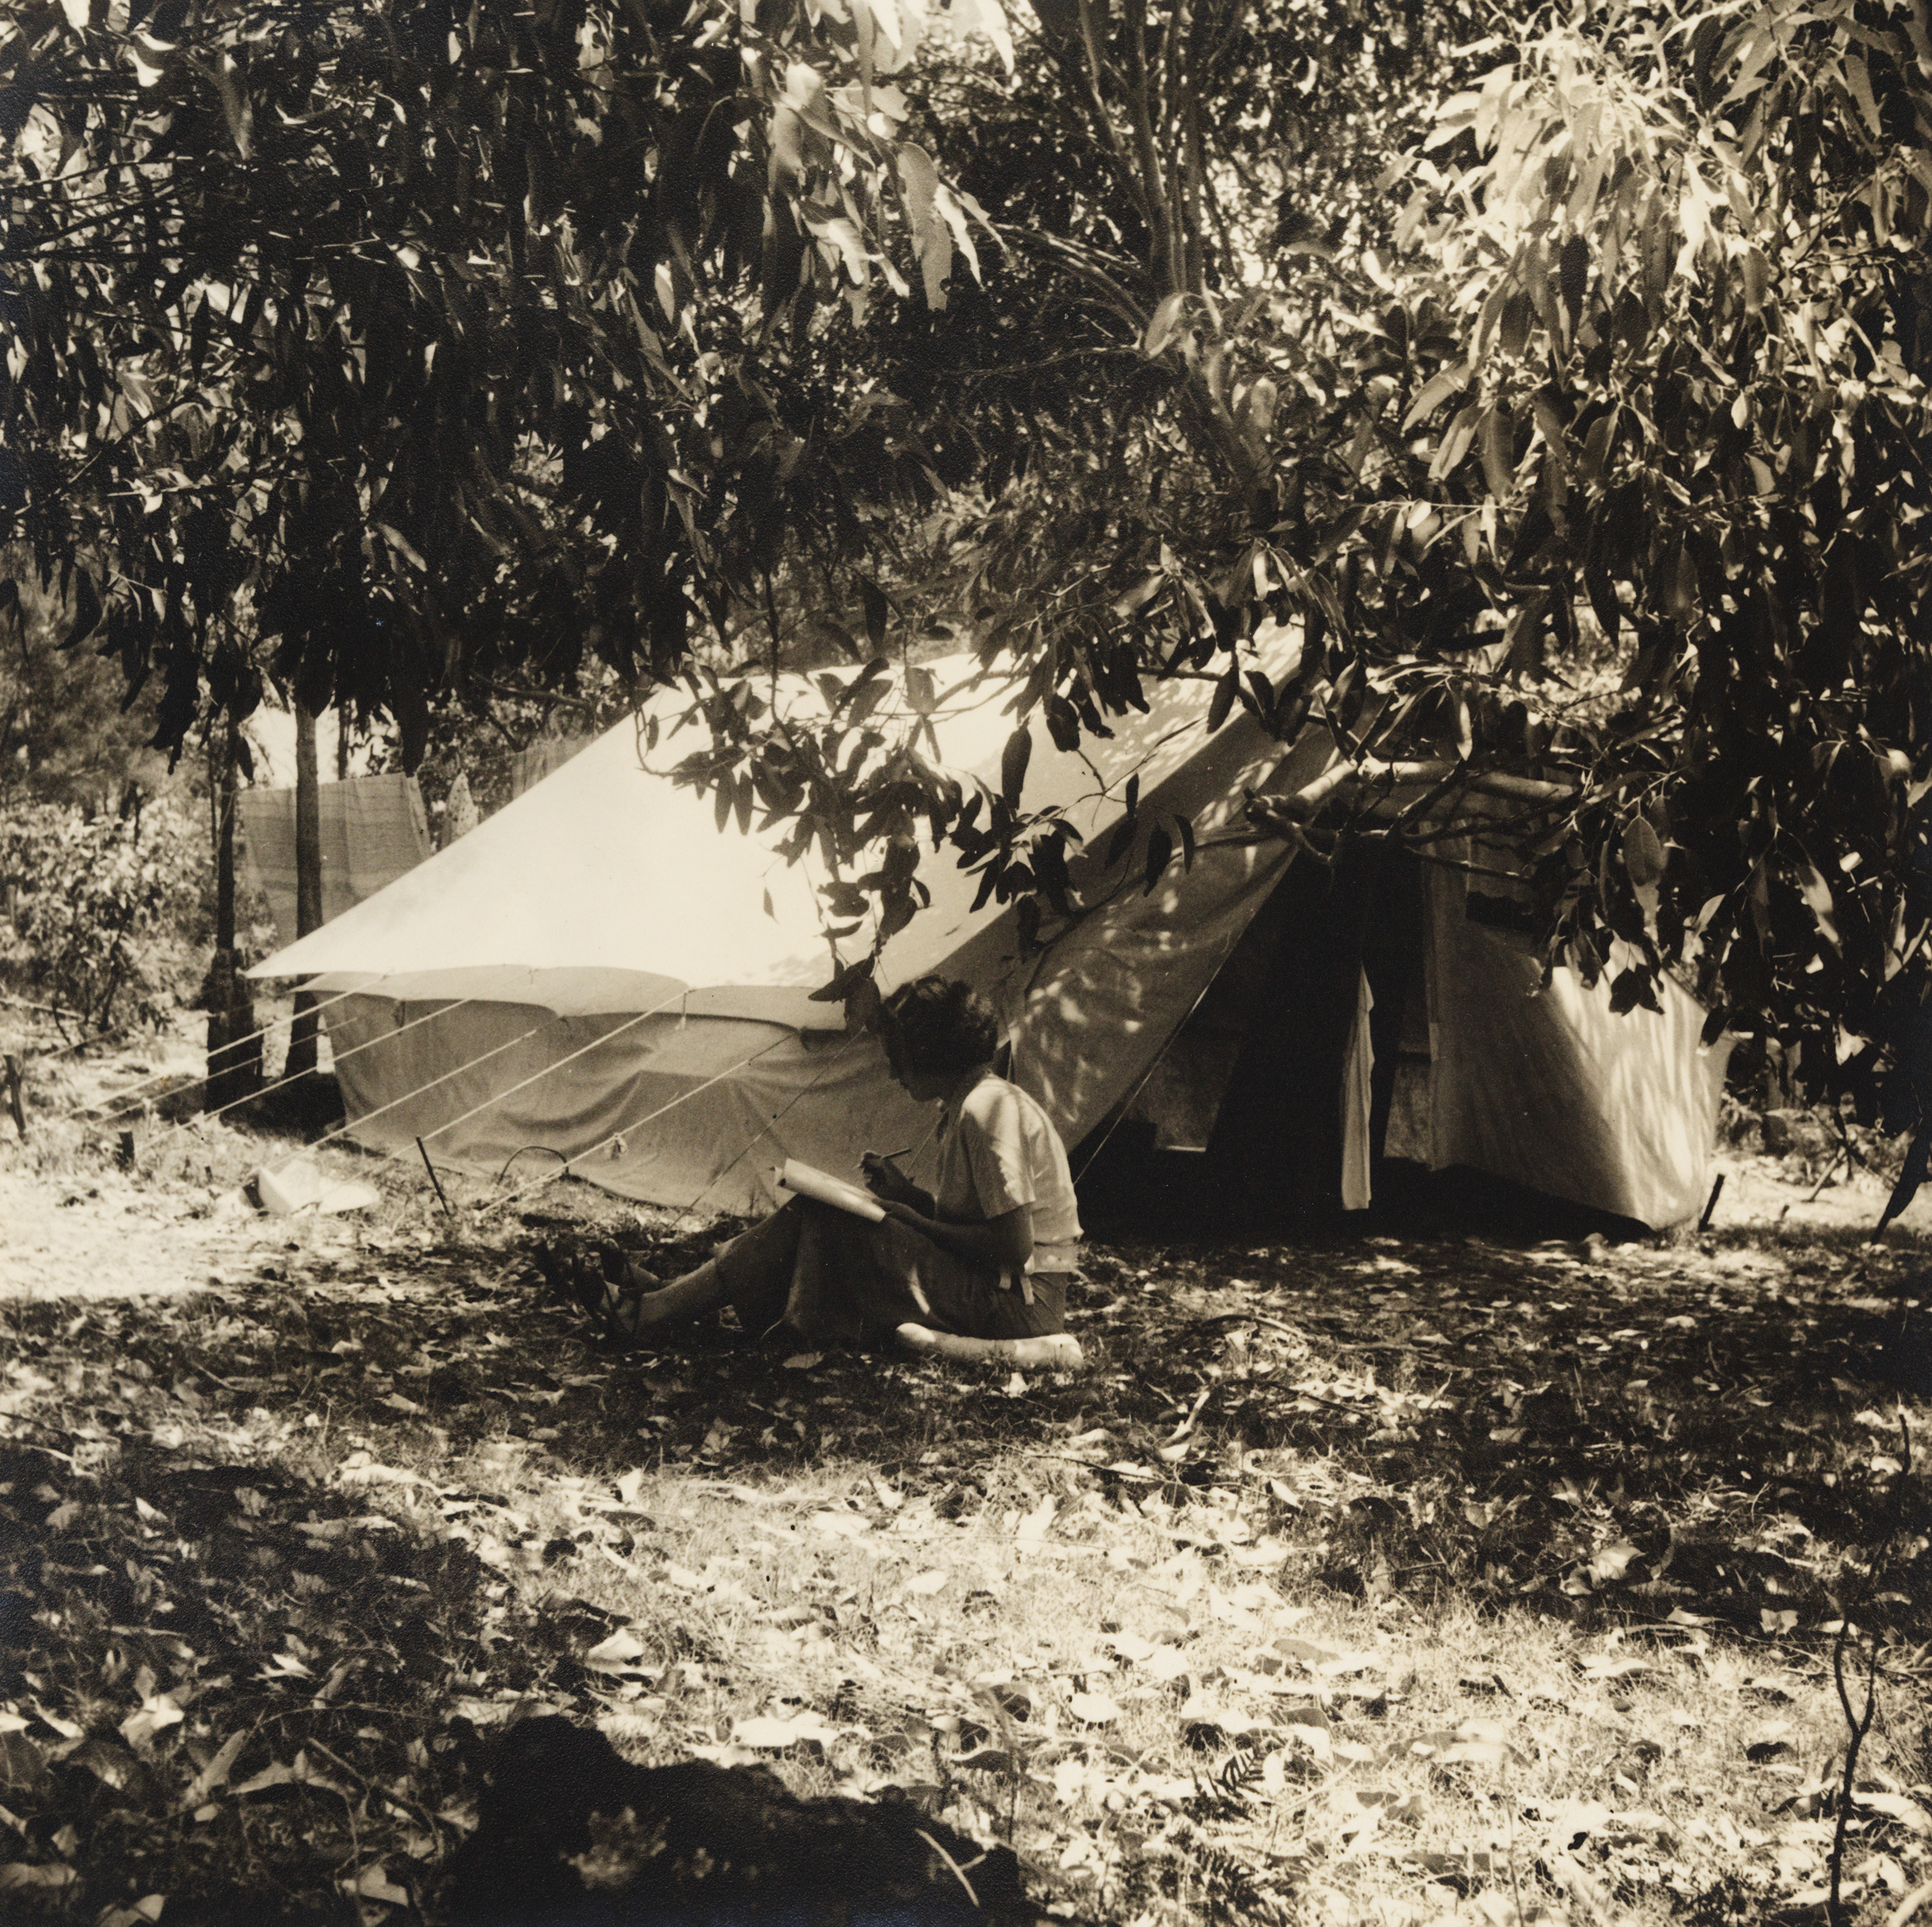 A sepia photograph of a woman sitting writing outside a canvas tent - the ground covered in eucalyptus leaf litter which has fallen from the branches that frame the photography. Drying washing hangs behind the tent.